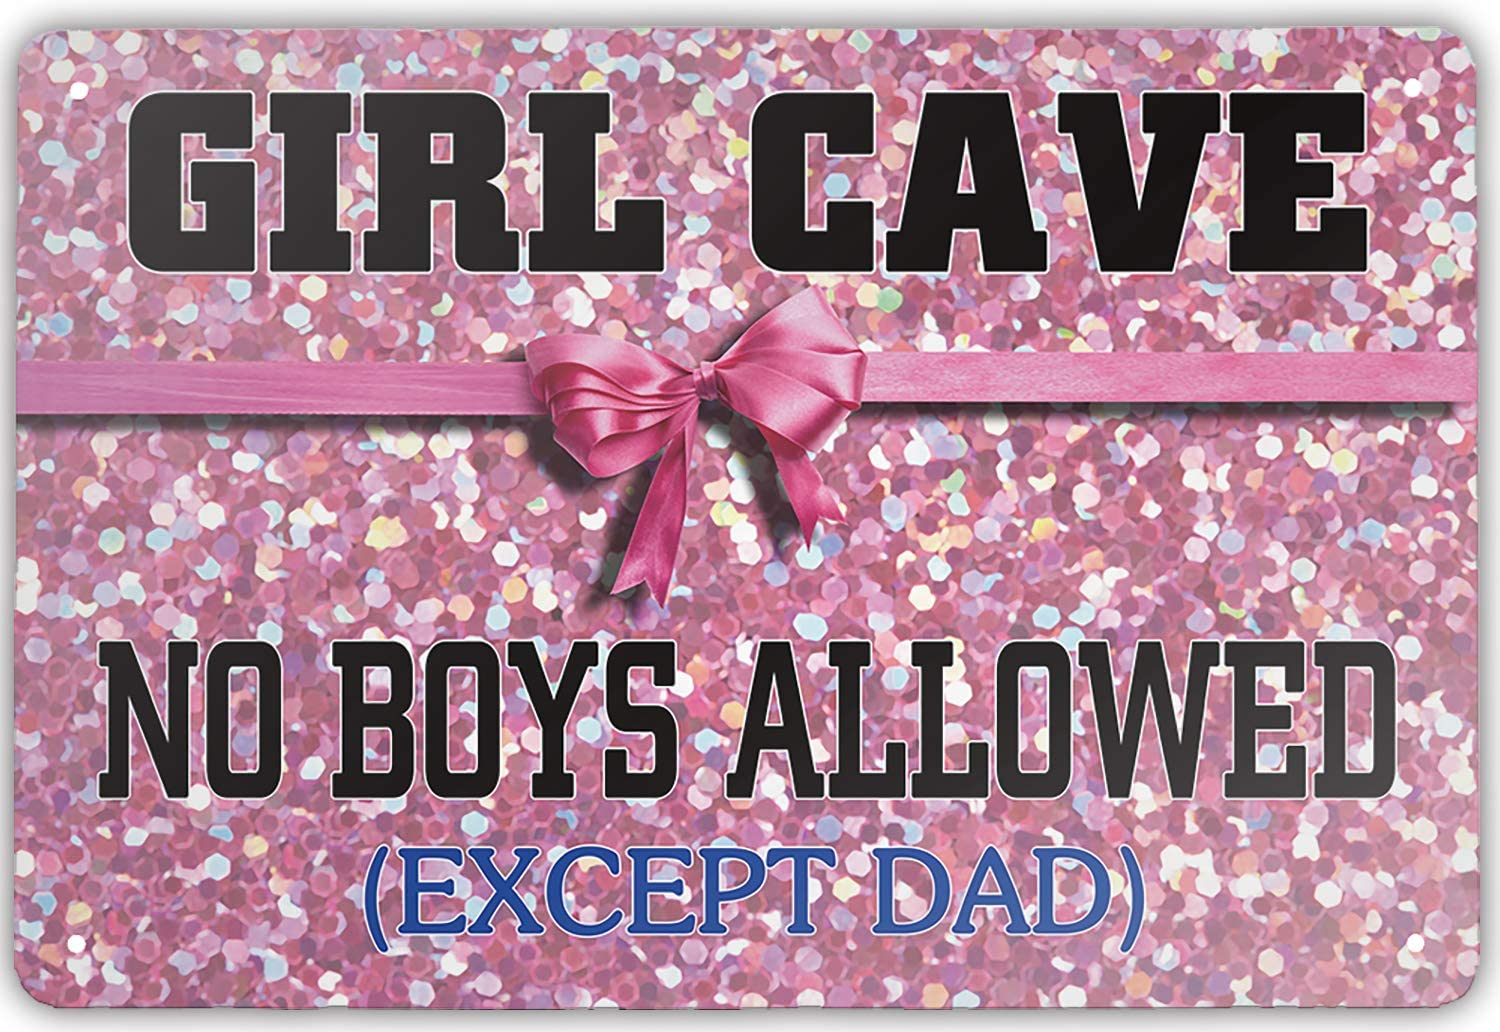 Tin Sign -Girl CAVE NO Boys Allowed Except DAD- Vintage Style Bar Pub Garage Hotel Diner Cafe Home Iron Mesh Fence Farm Supermarket Mall Forest Garden Door Wall Decor Art (8